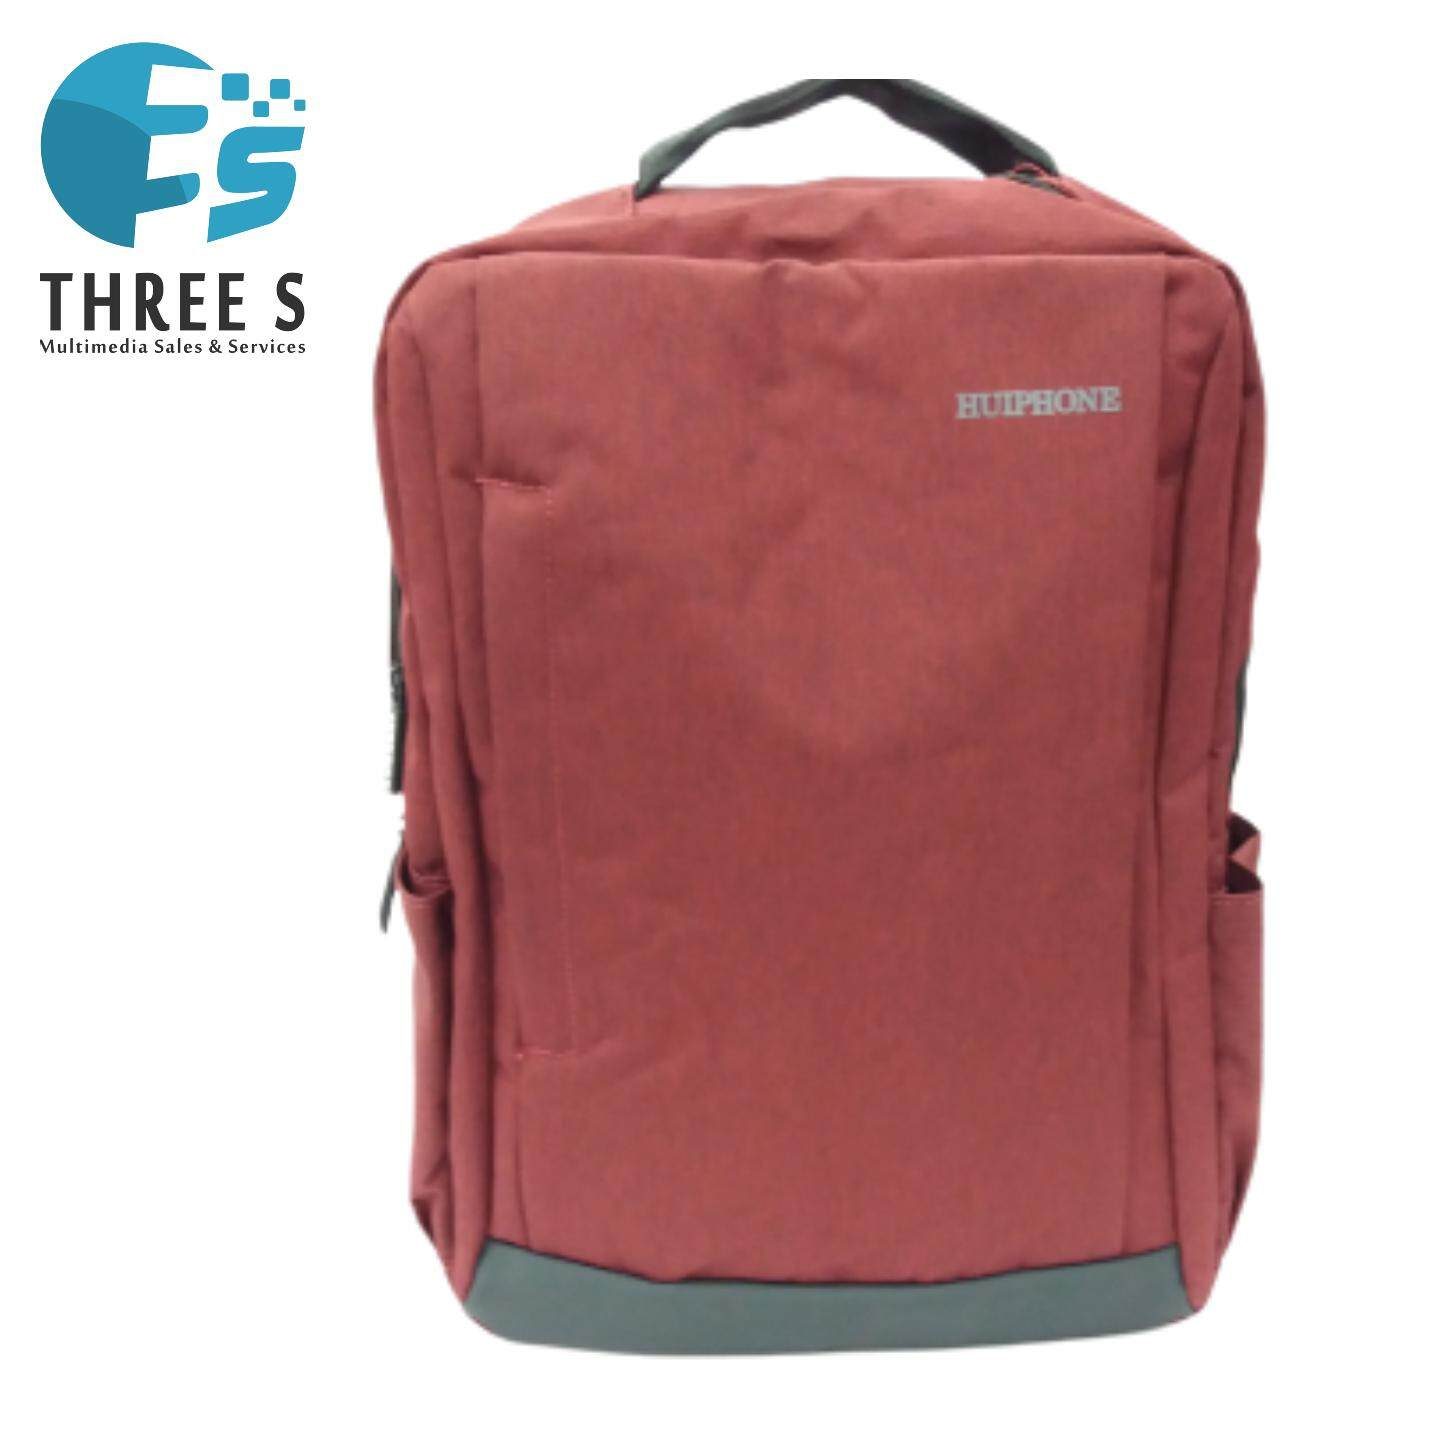 Backpack Huiphone -  Laptop Backpack With USB Charging Port